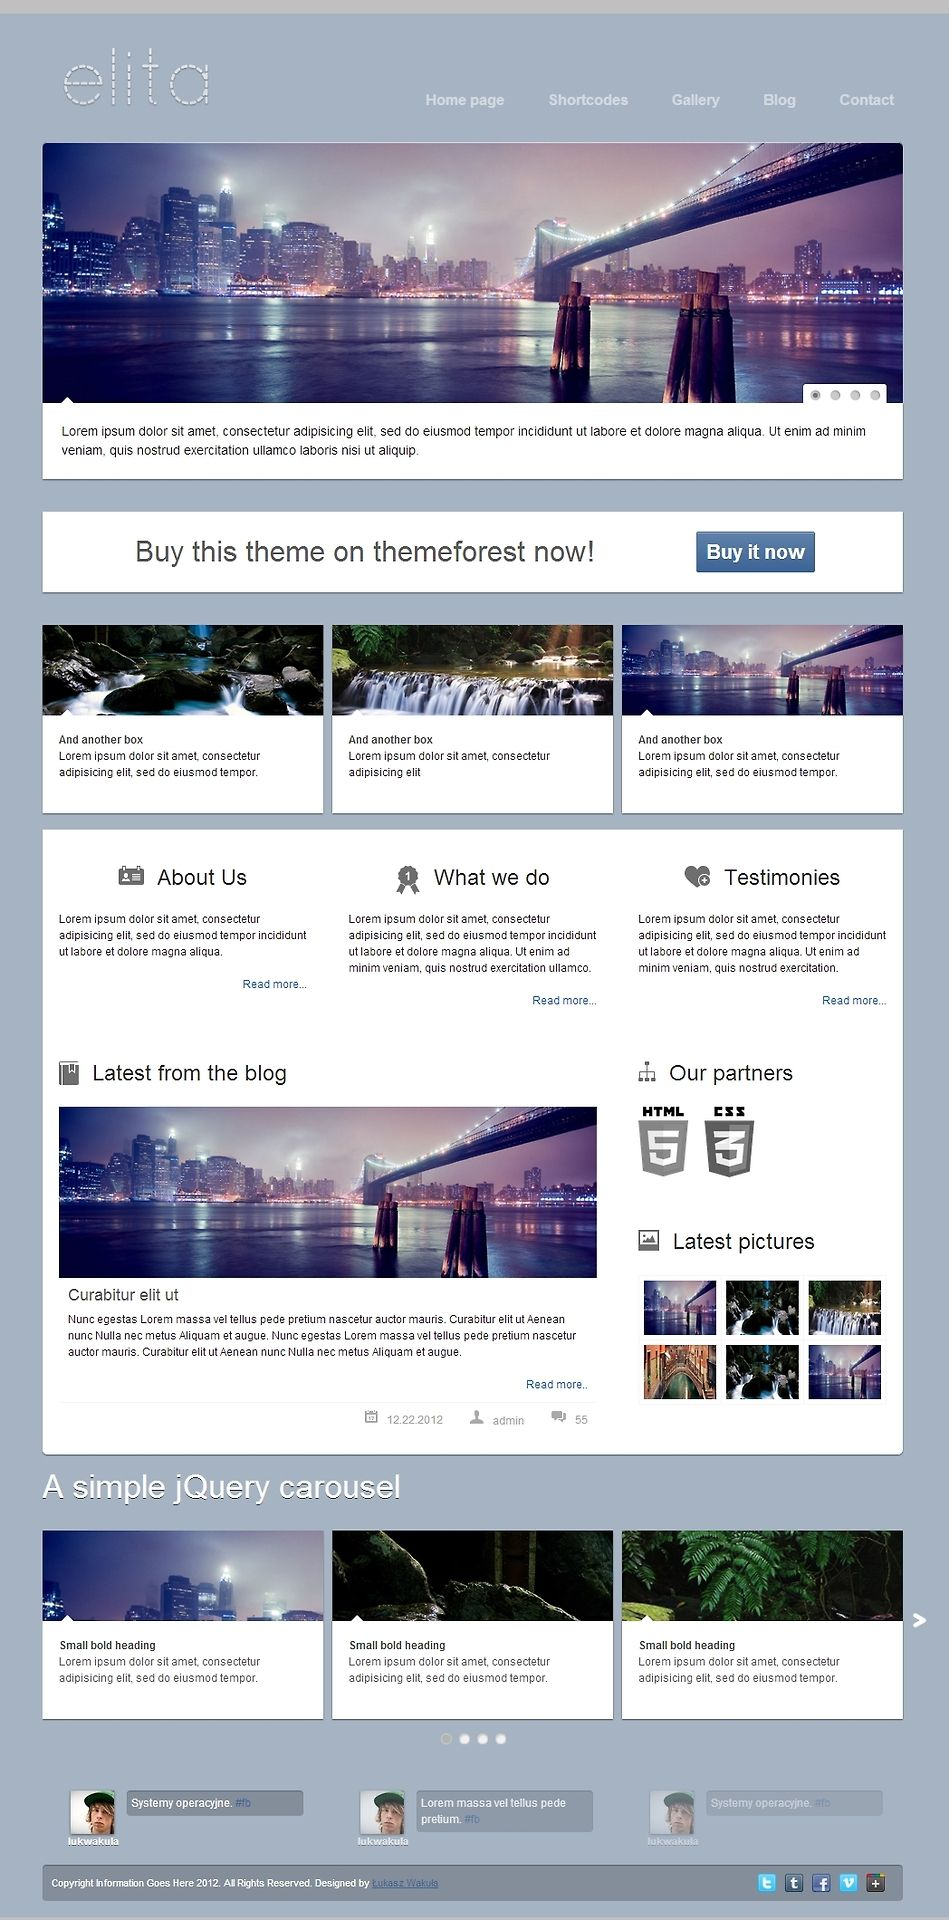 Free CSS | 3020 Free Website Templates, CSS Templates and